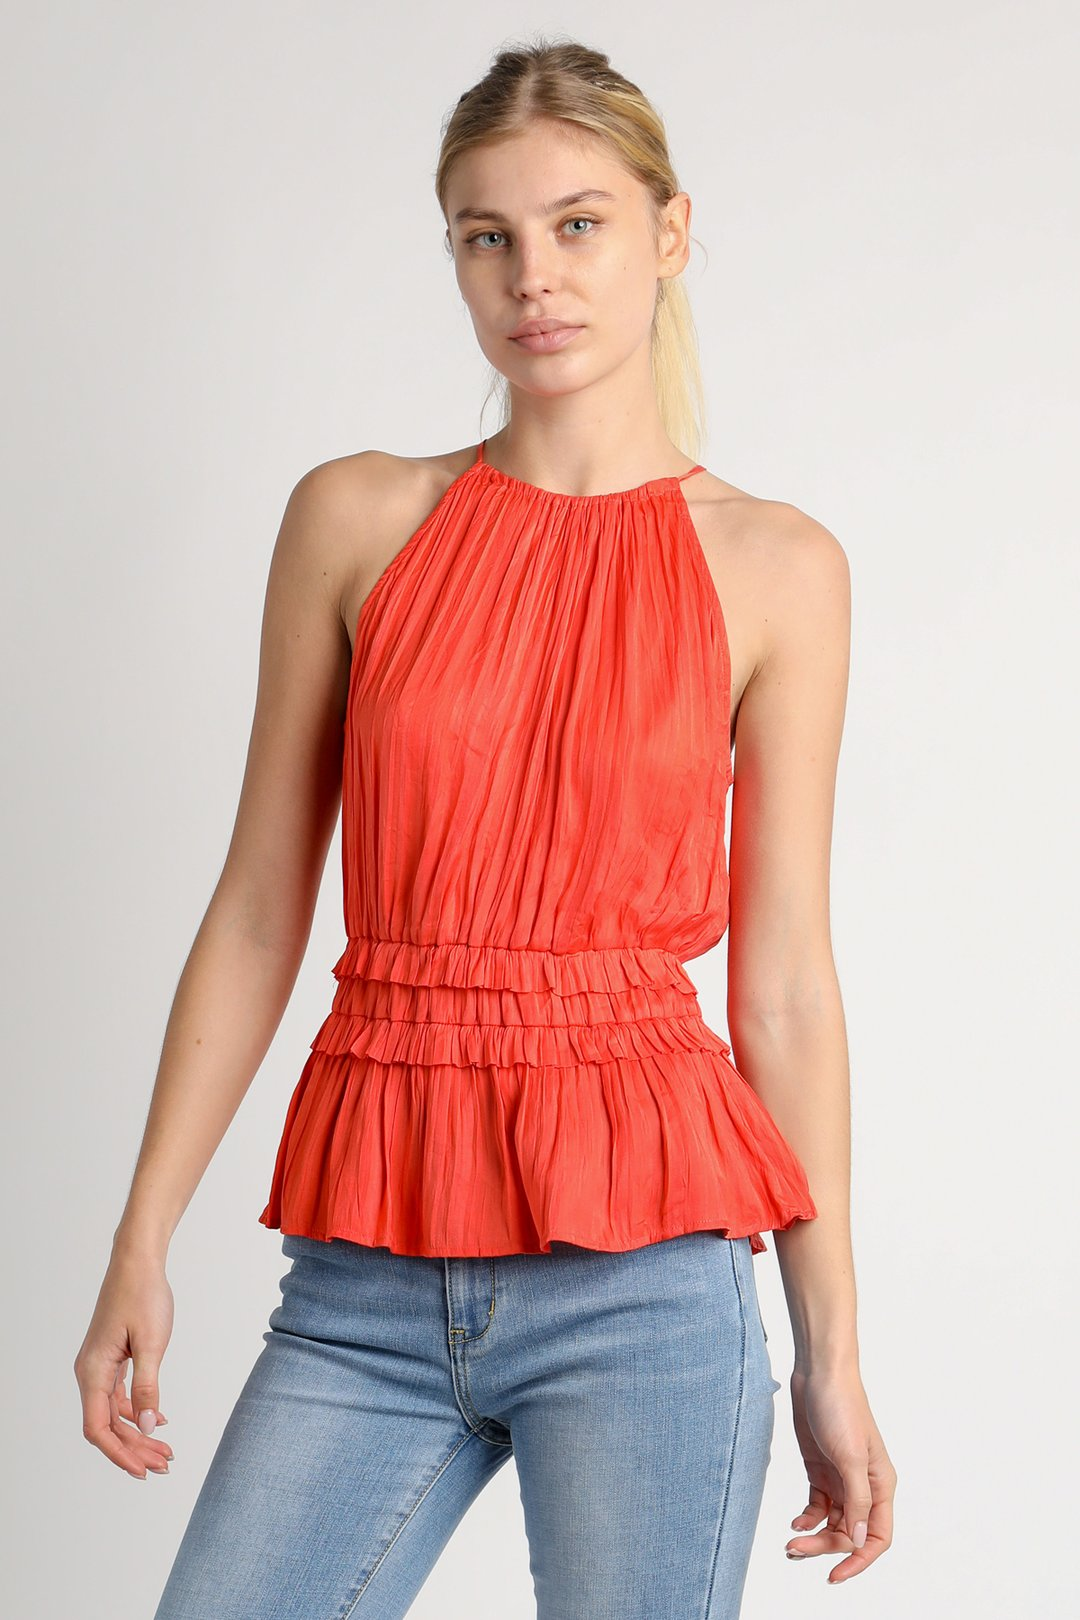 Pleated Halter Top w/ Back Cut Out - Tangerine